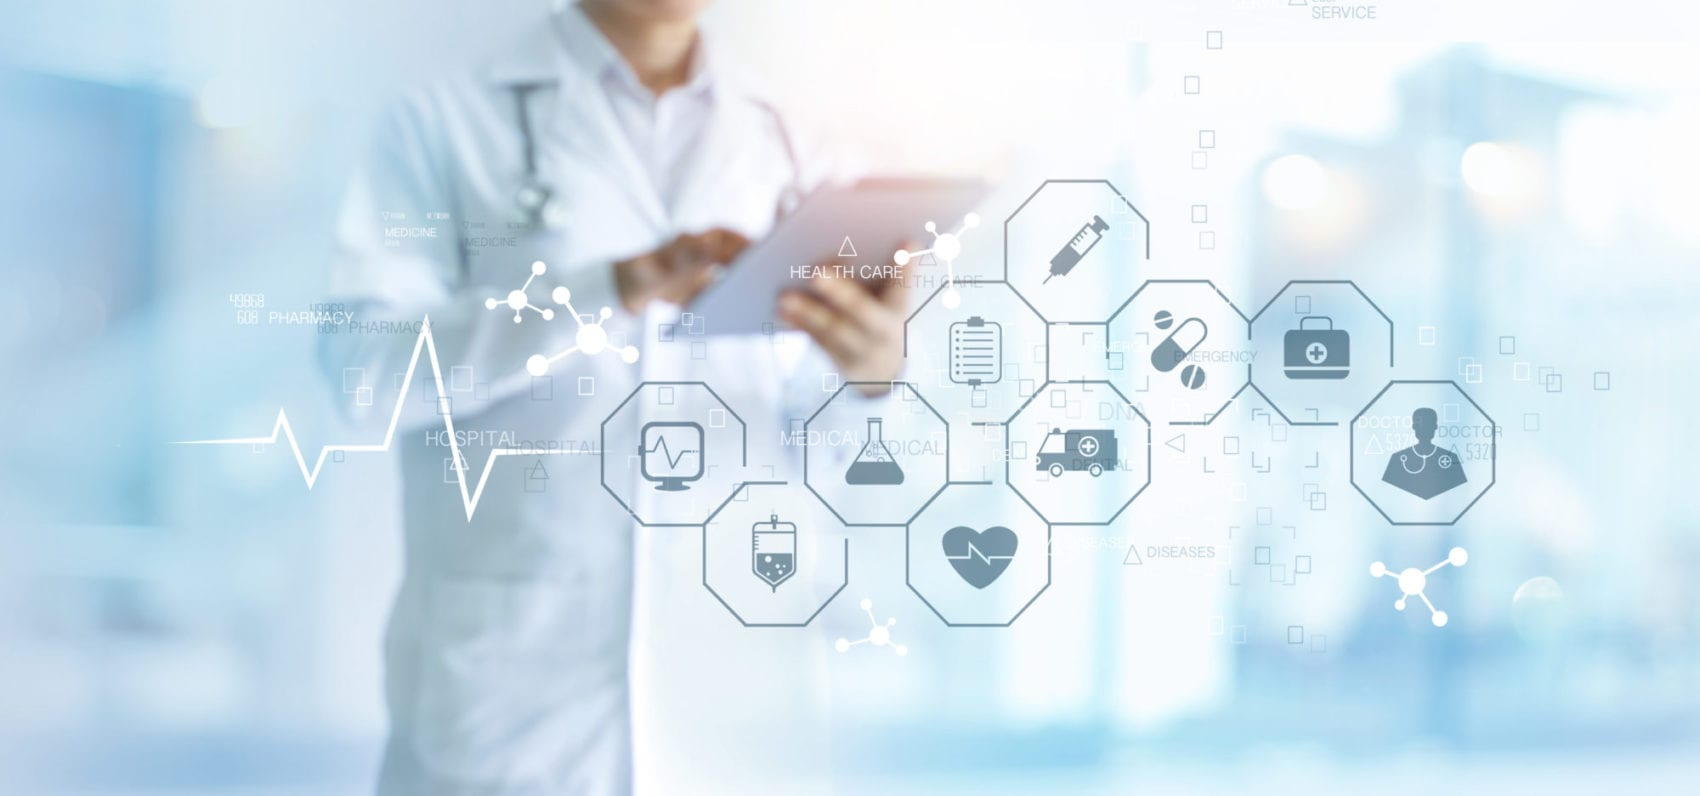 HealthWare Systems Technology Software